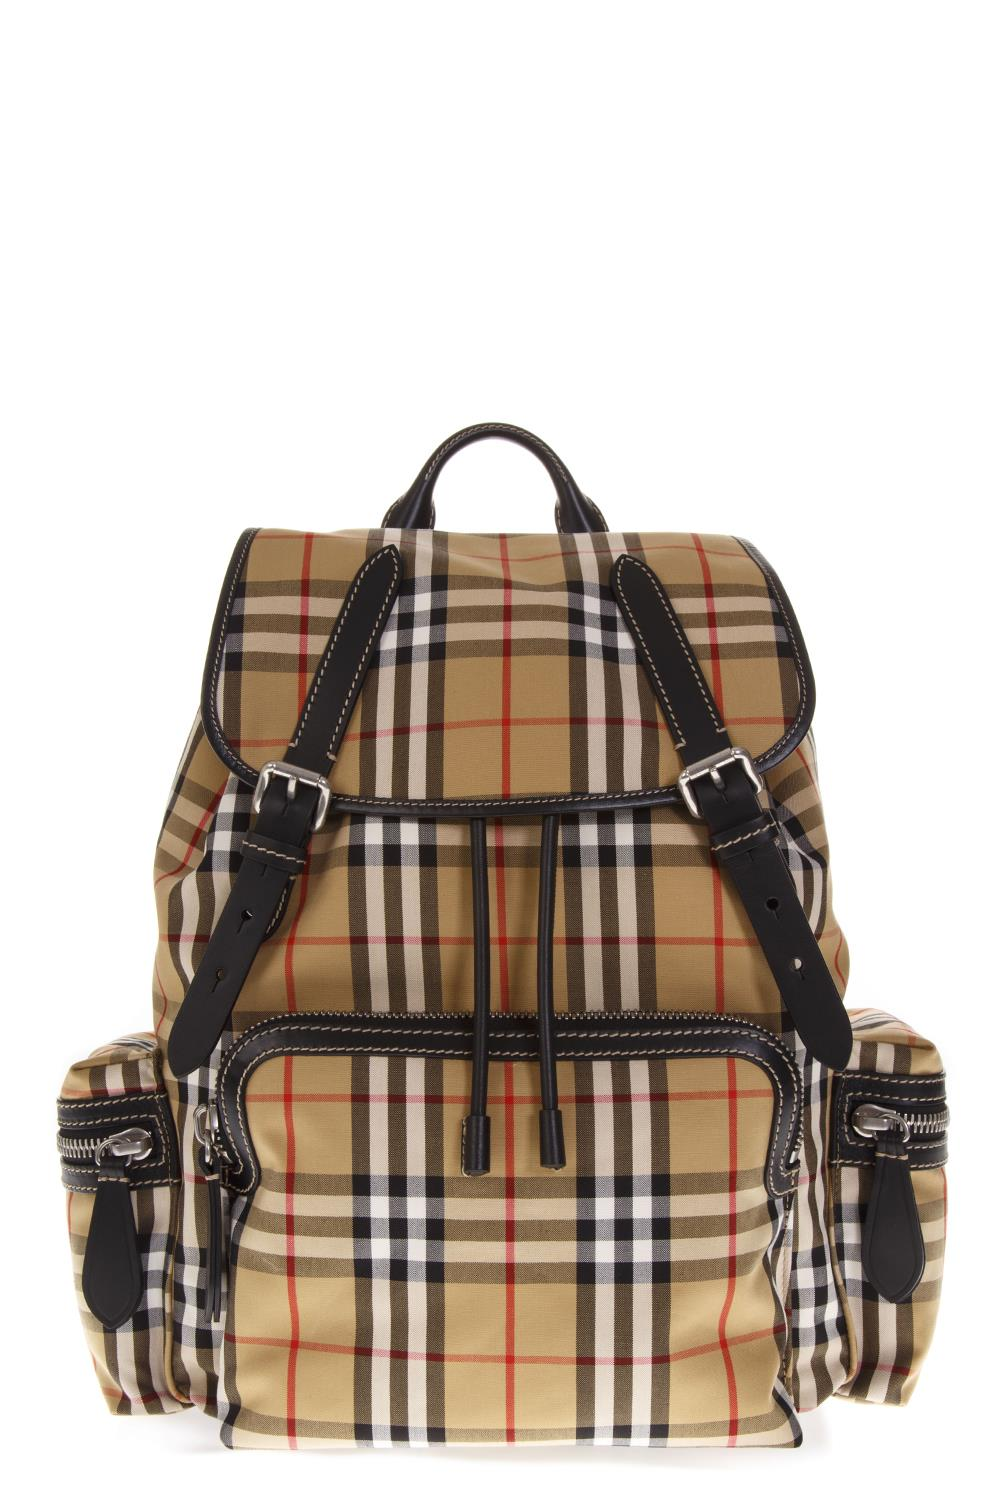 5f47b1c8b438 RUCKSAC YELLOW NYLON BACKPACK WITH CHECK HOUSE FW 2018 - BURBERRY -  Boutique Galiano